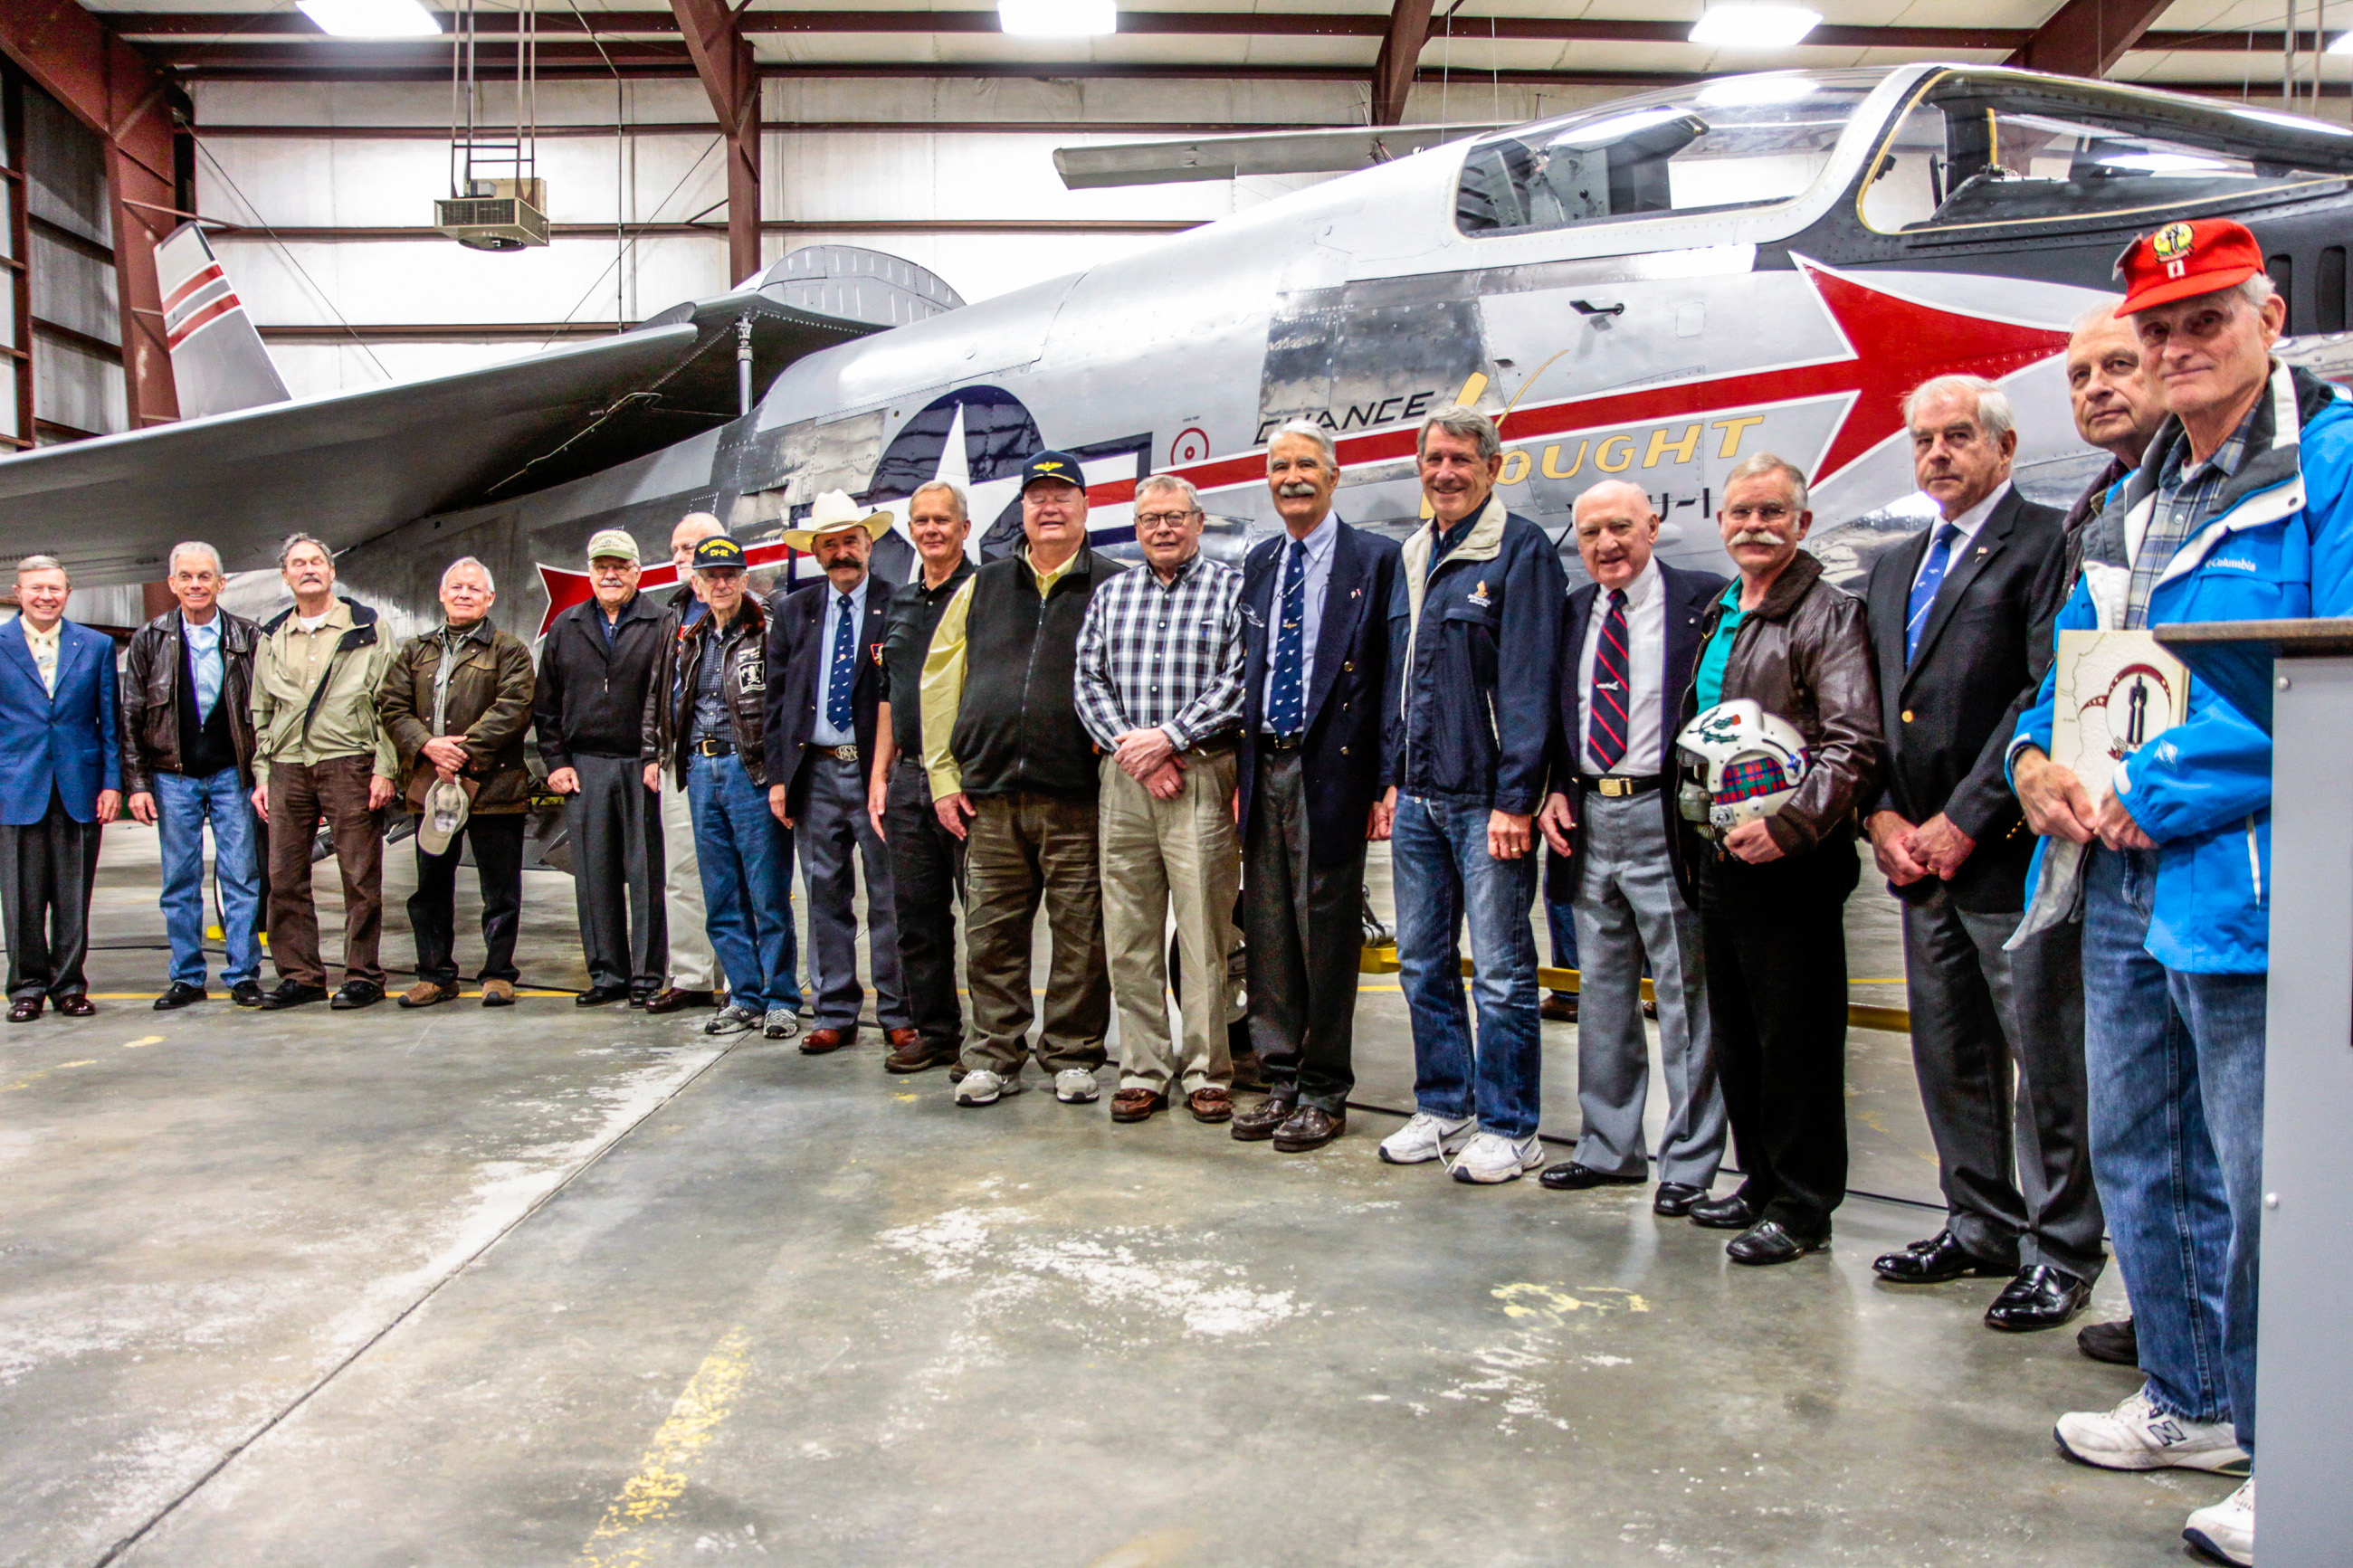 Former Crusader pilots stand in front of the XF8U-1 following the unveiling ceremony at Museum of Flight's restoration hangar in Everett, Washington. (photo by Ted Huetter/Museum of Flight)